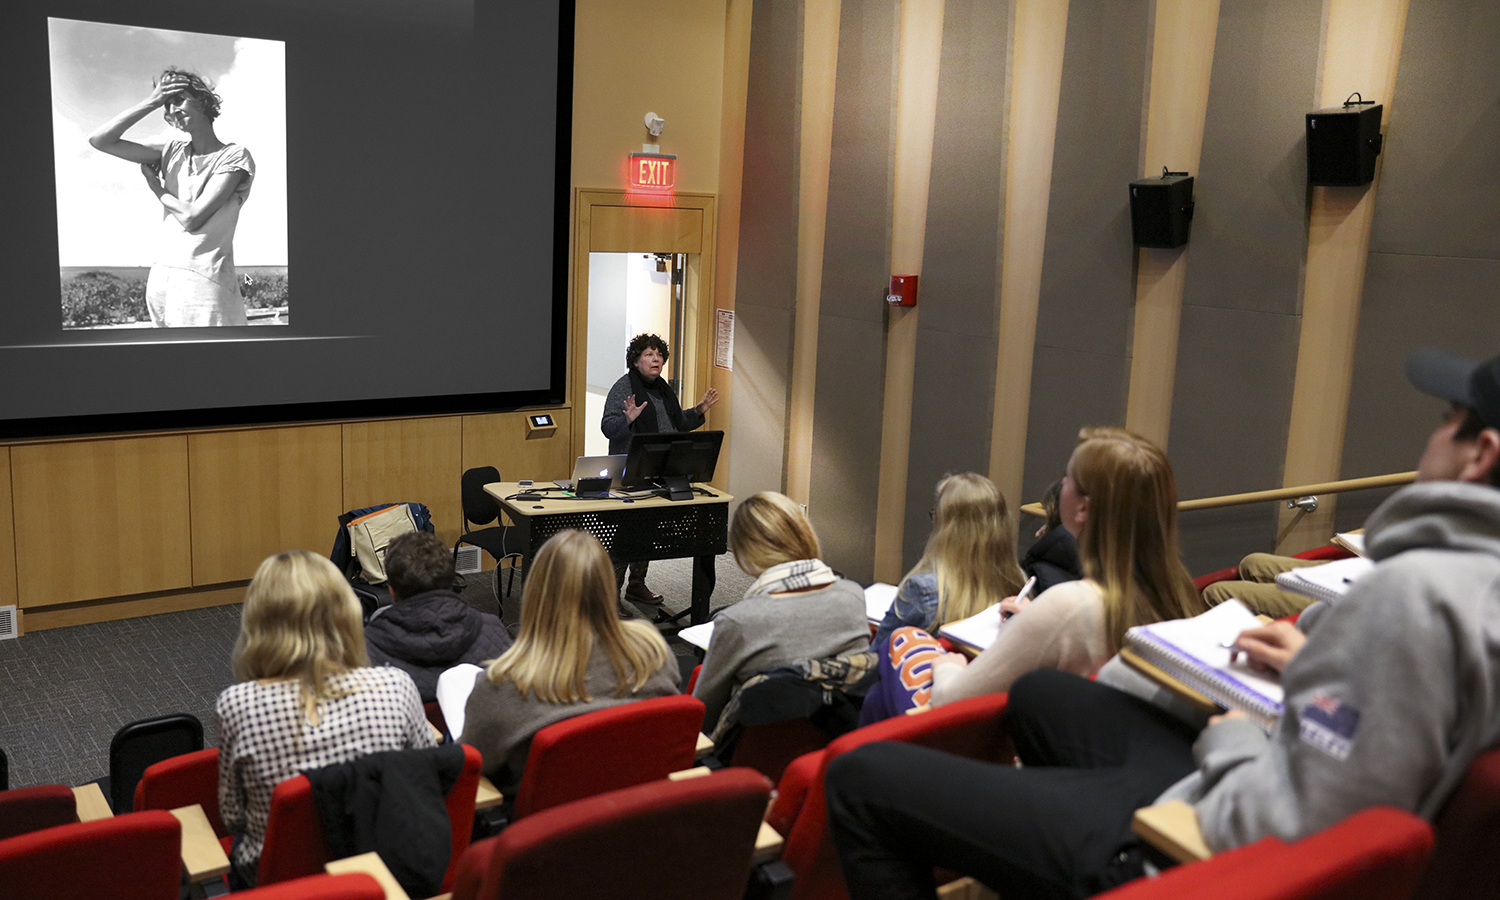 Professor of Media and Society Linda Robertson talks about X with students as part of X in the Fish Screening Room of the Gearan Center for the Performing Arts.